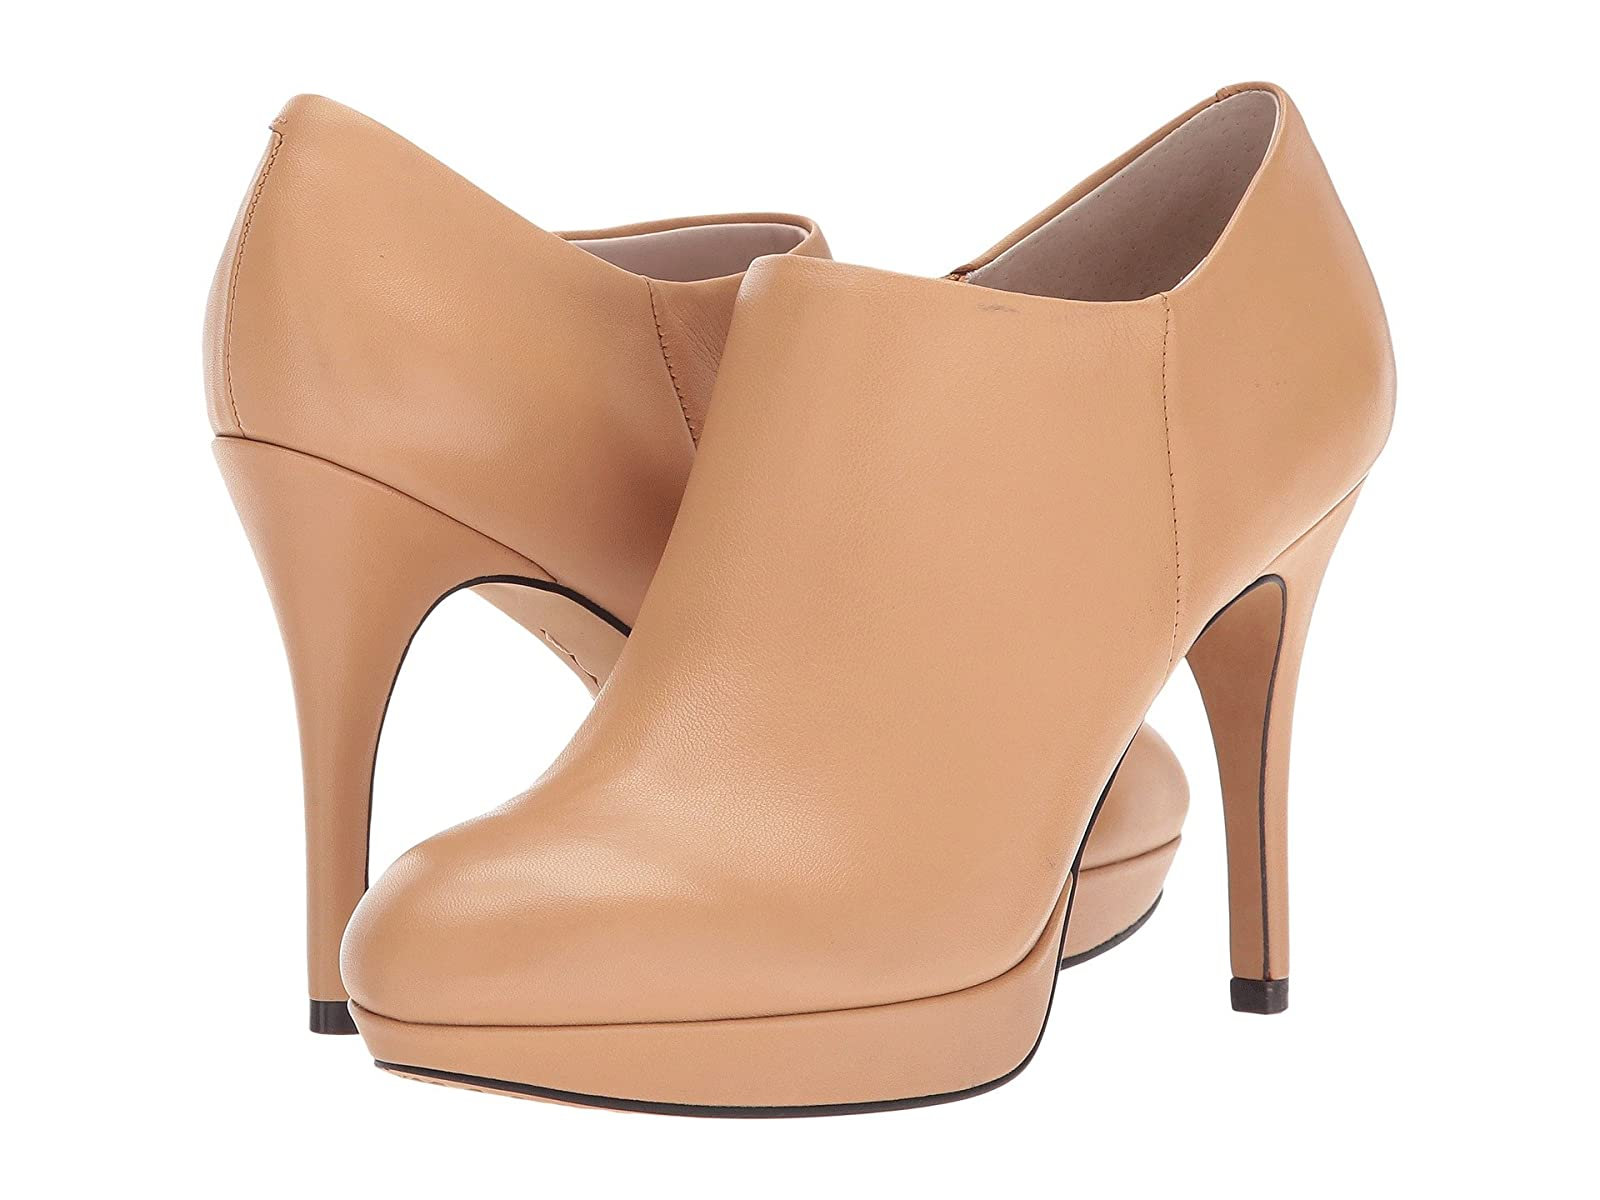 Vince Camuto ElvinCheap and distinctive eye-catching shoes